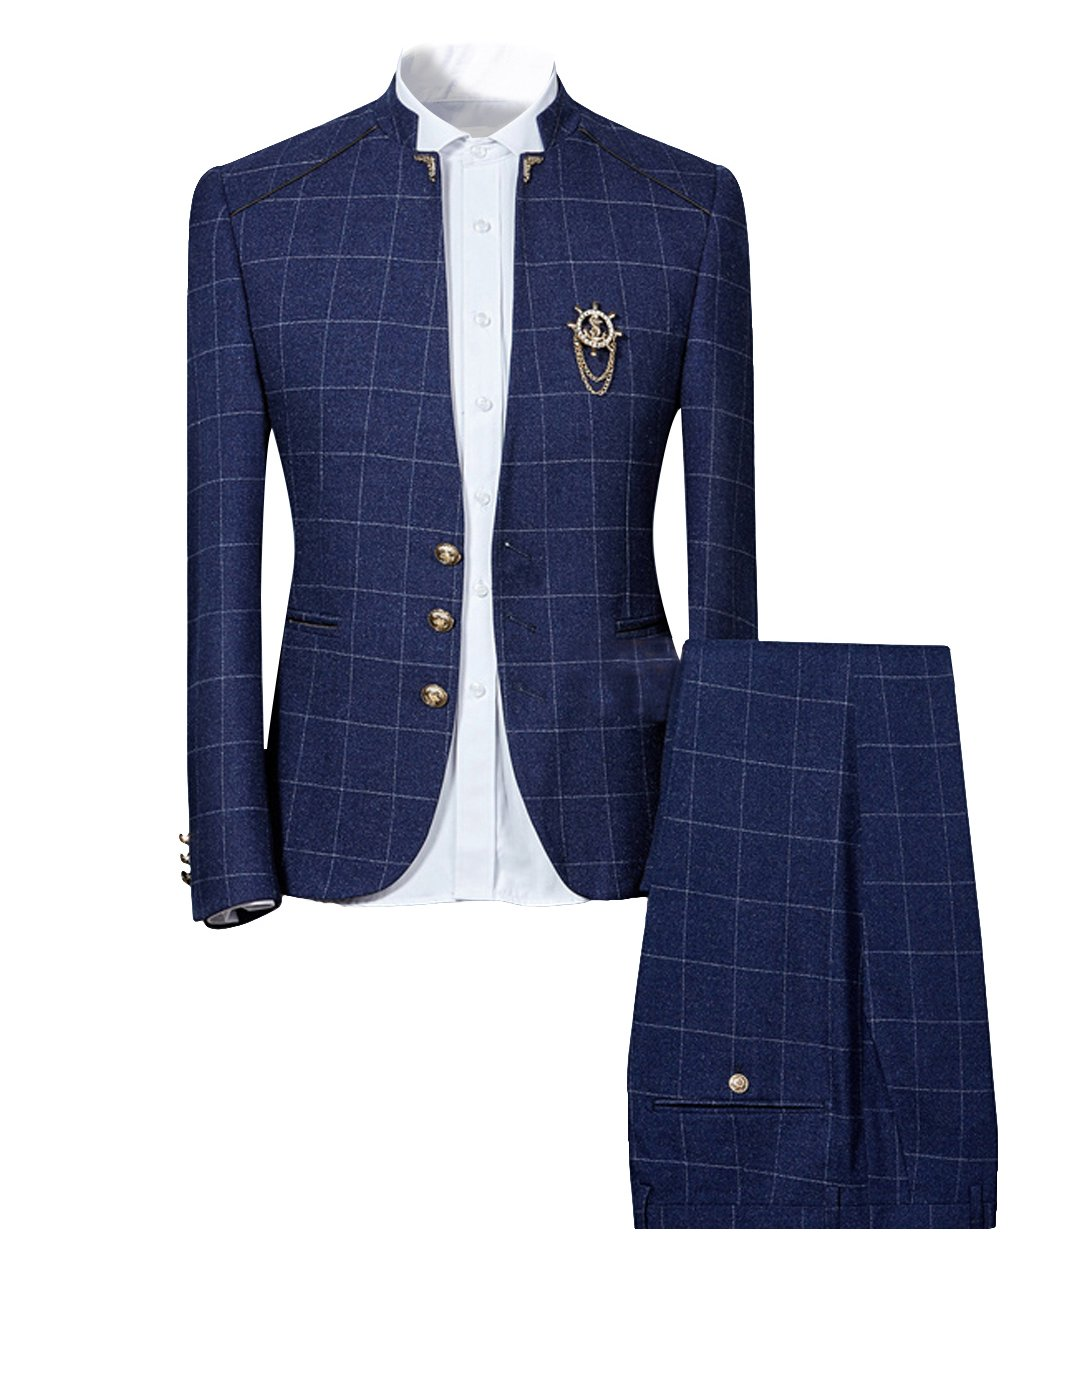 Cloudstyle Mens Unique Slim Fit Checked Suits 2 Piece Vintage Jacket and Trousers,Navy,Large